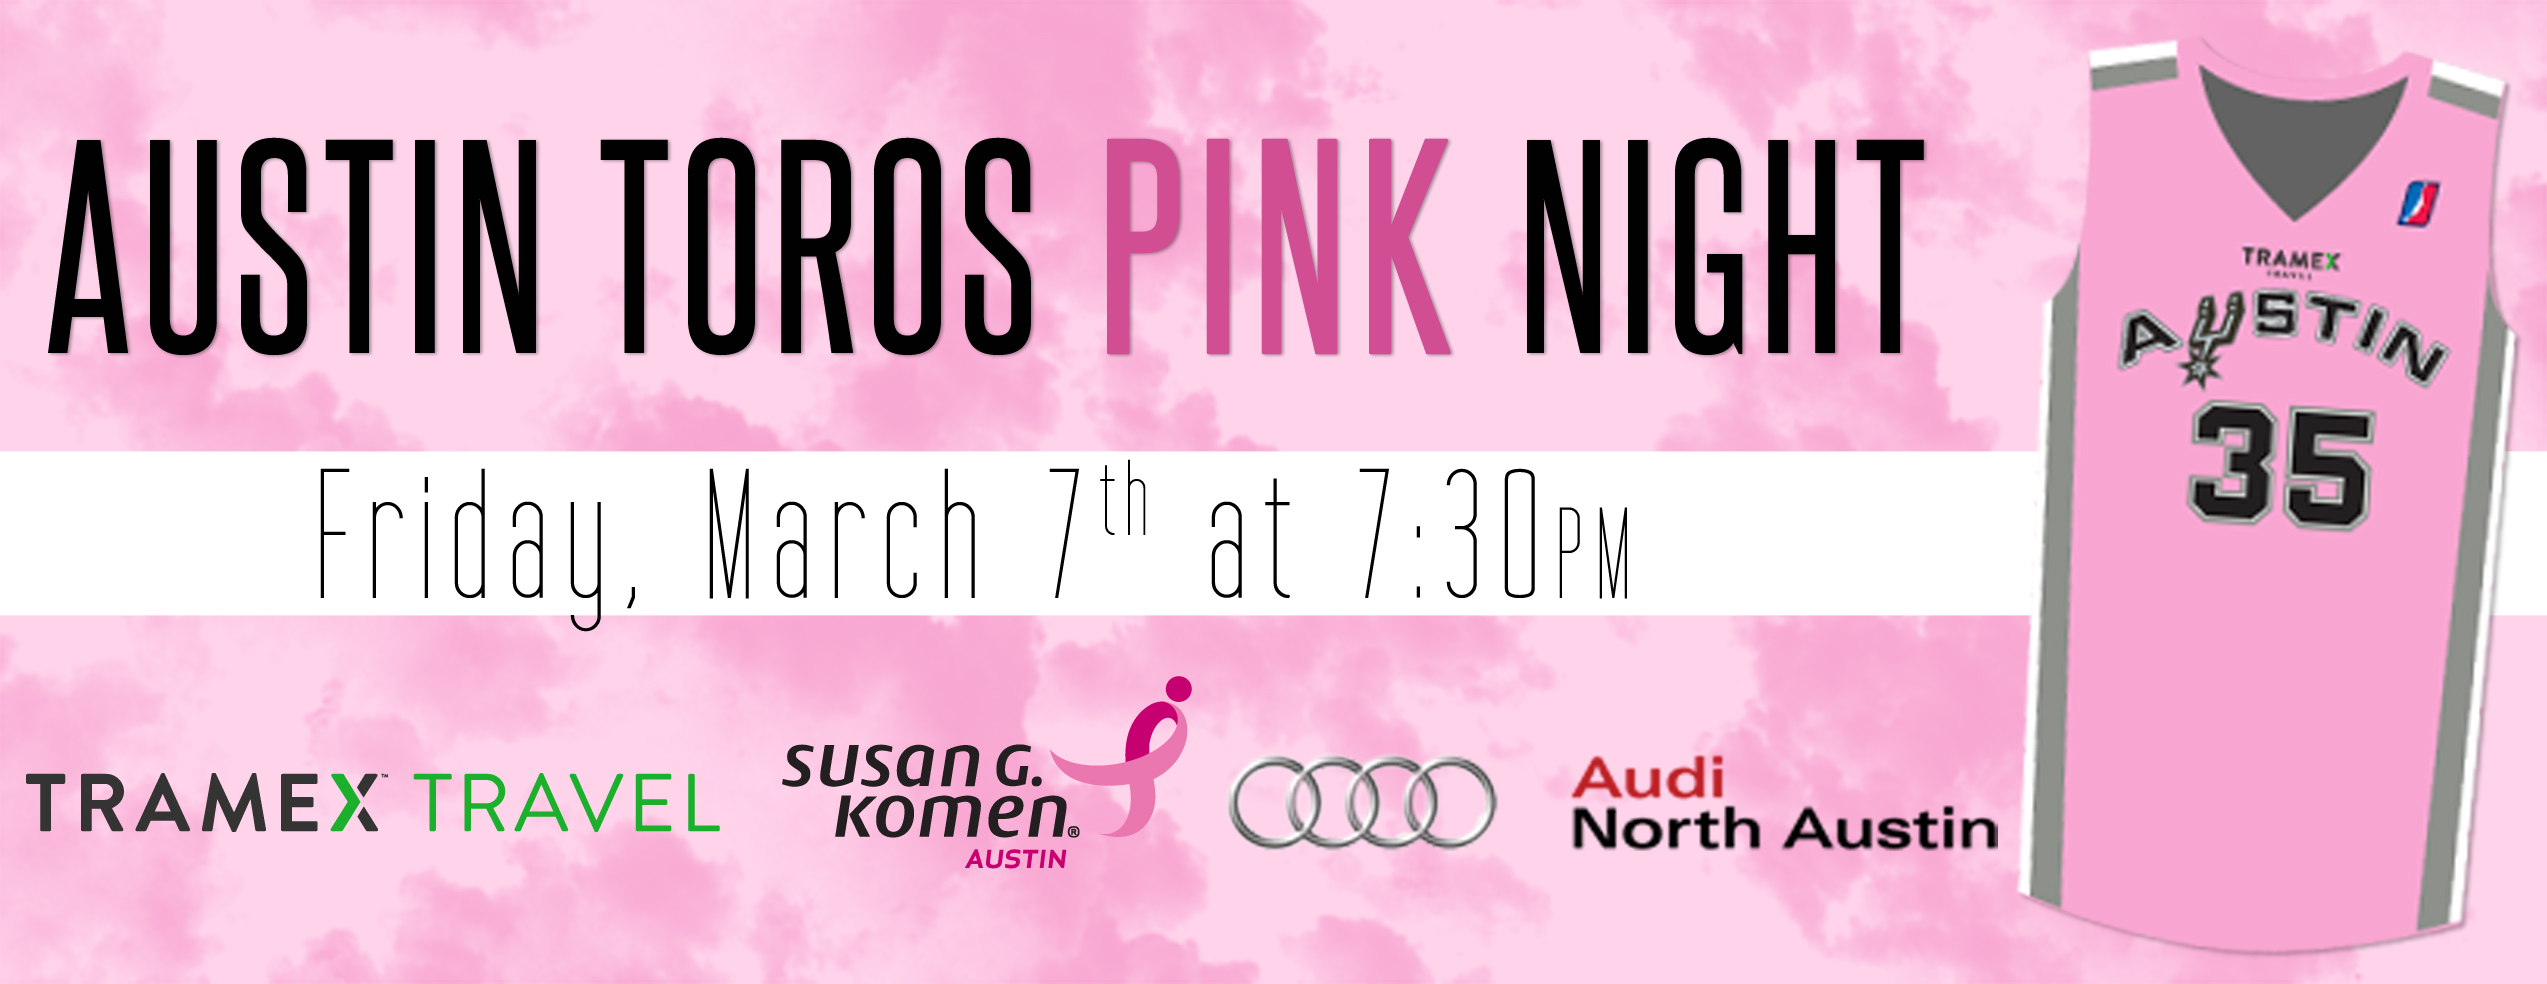 Austin Toros Pink Night Header